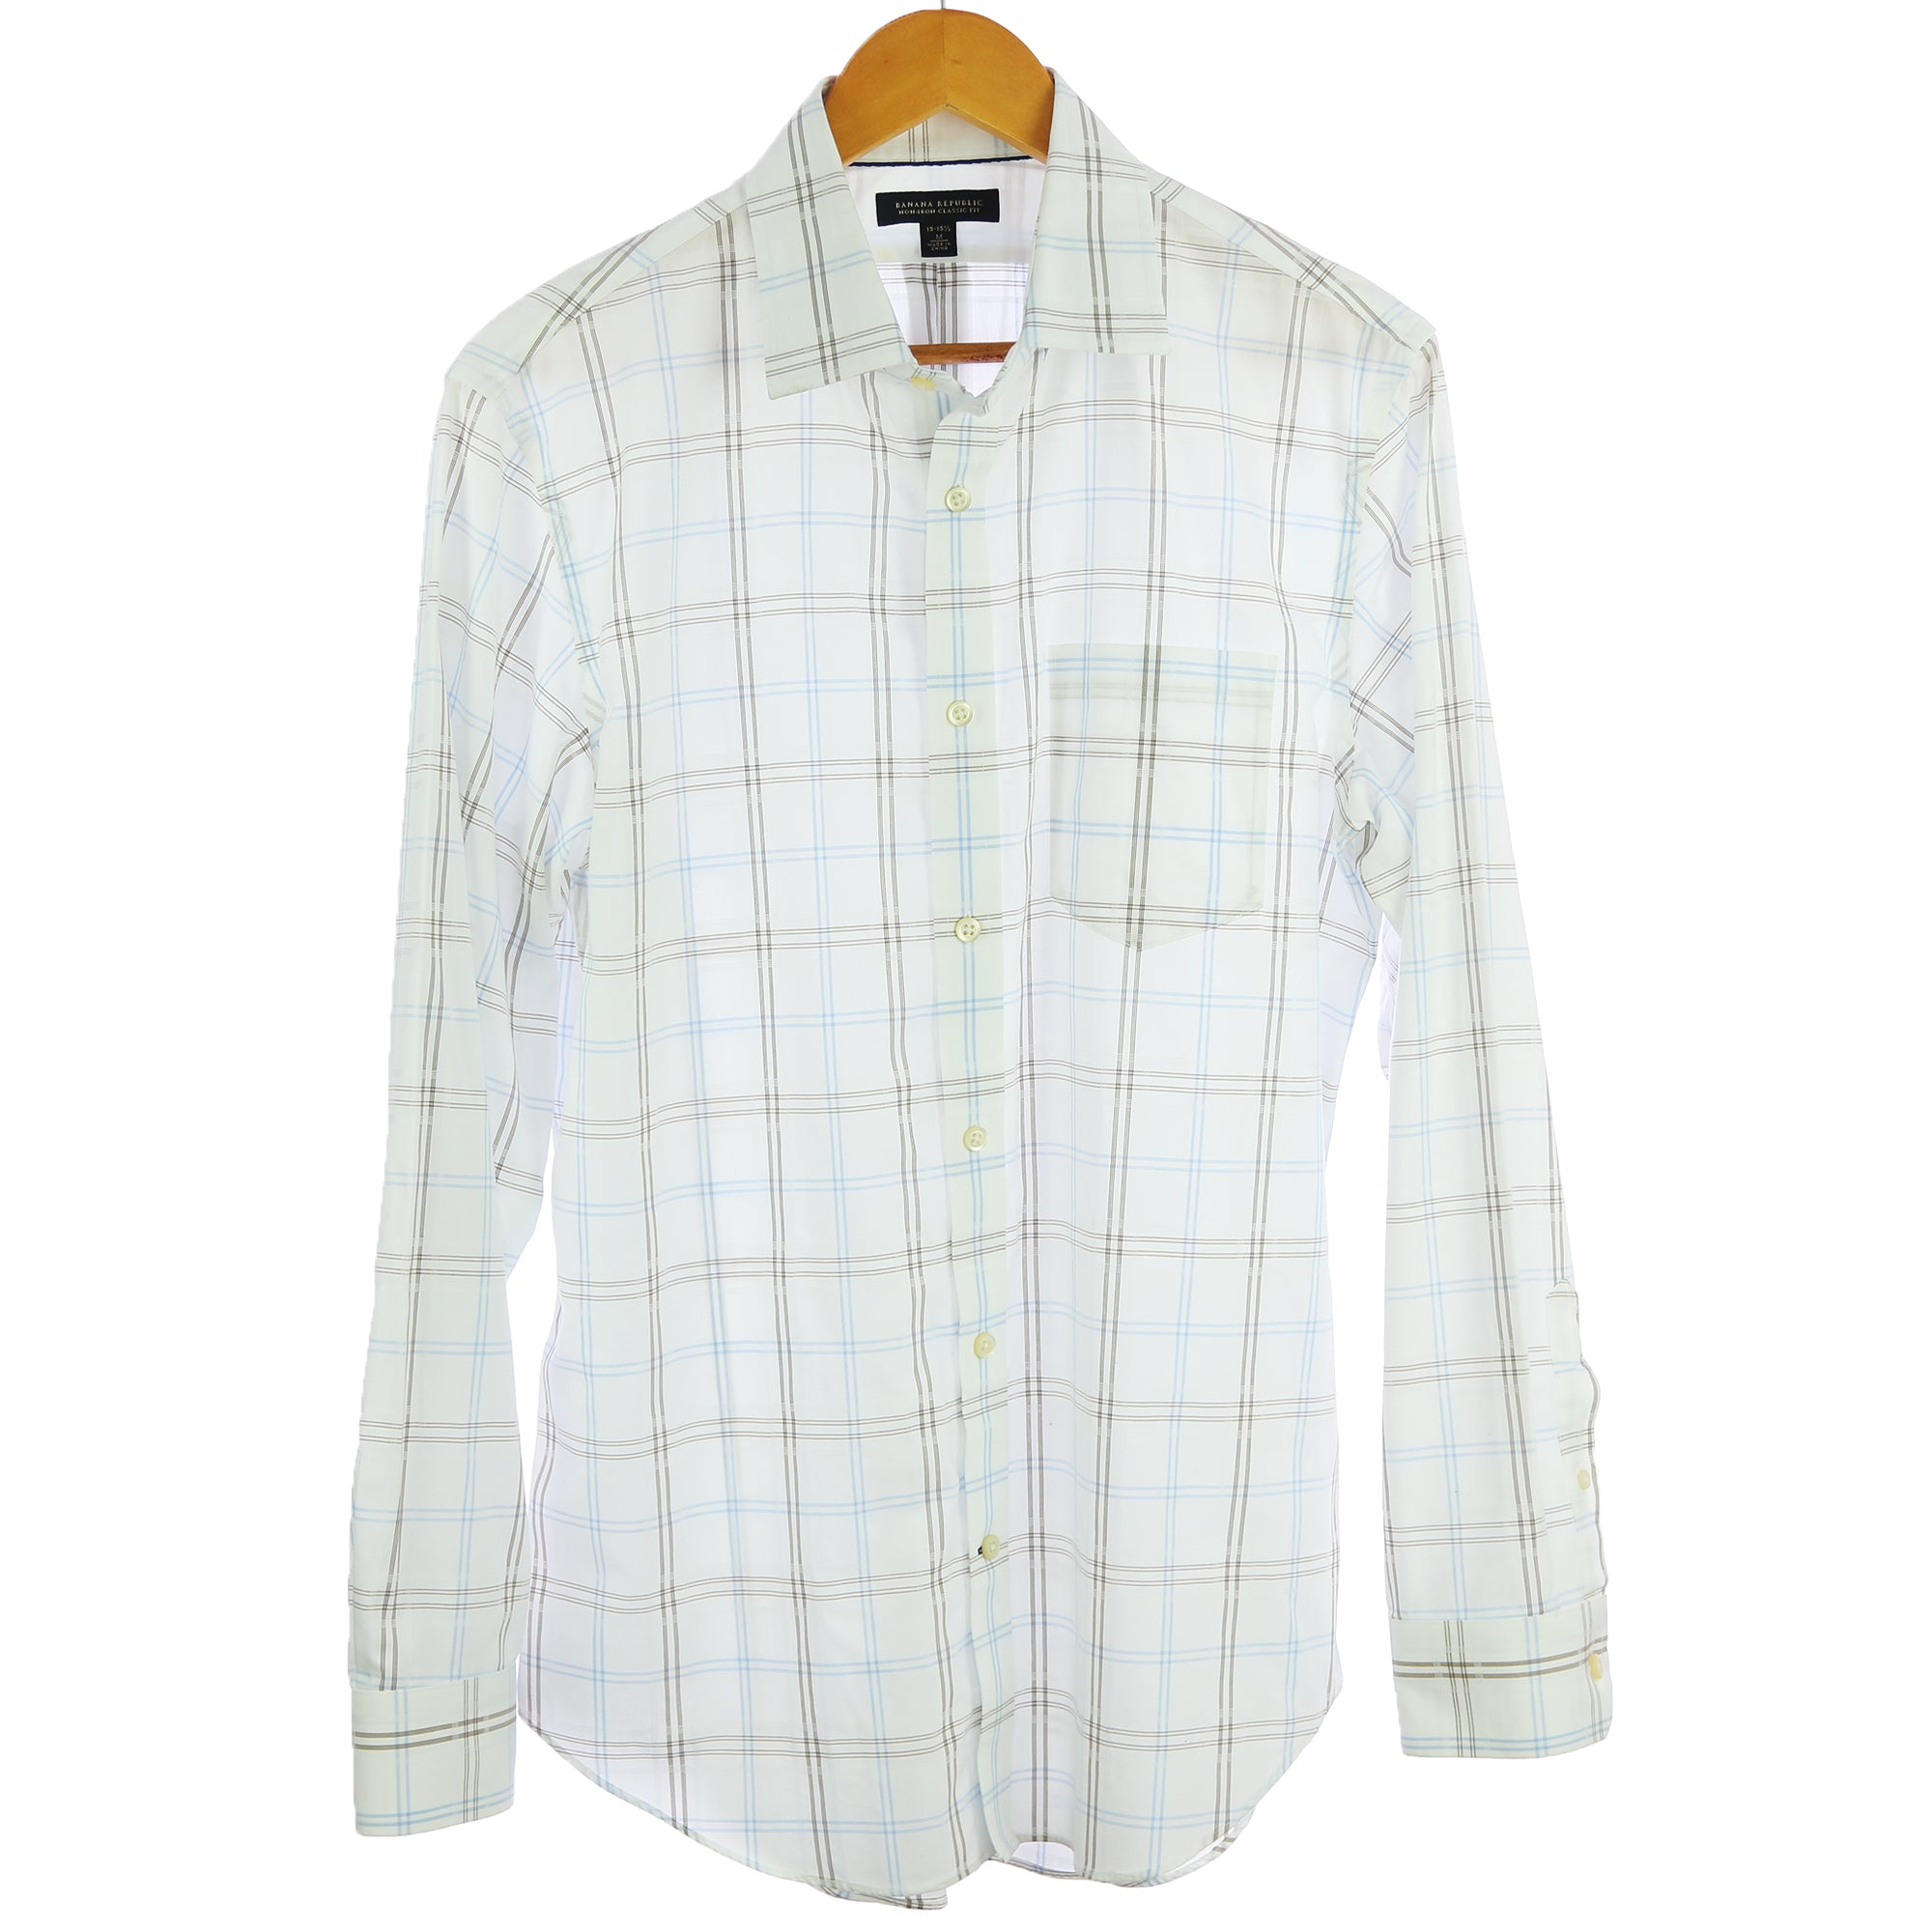 Banana Republic Medium White Plaid Shirt - Six 3 Shop